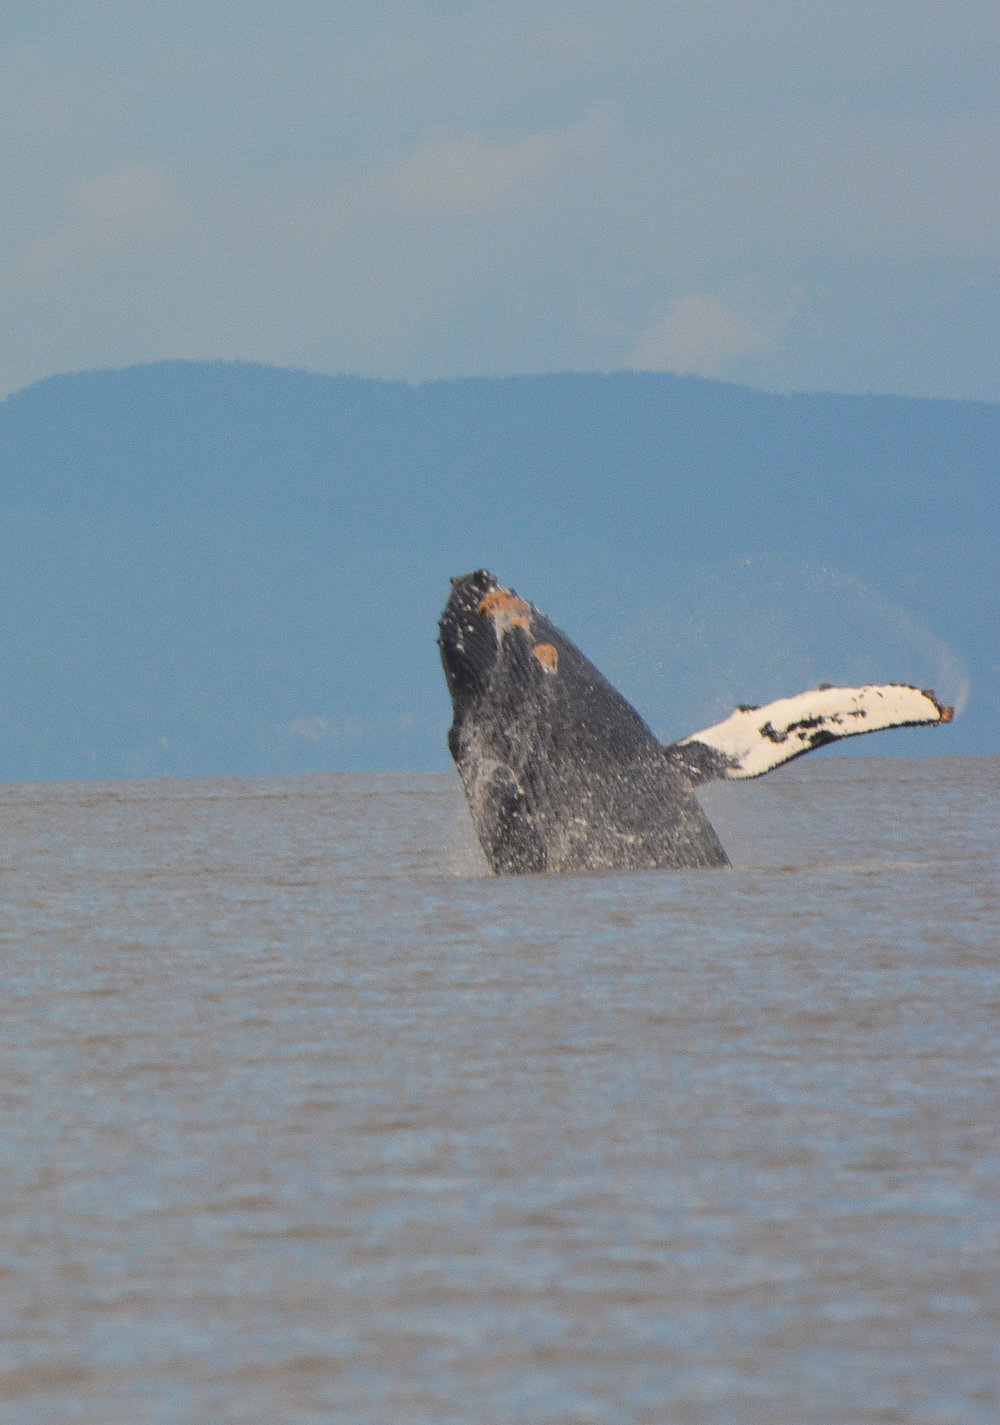 Humpback whale breaching... Notice the orange barnacles and worms covering the throat and flippers! Photo by Alanna Vivani